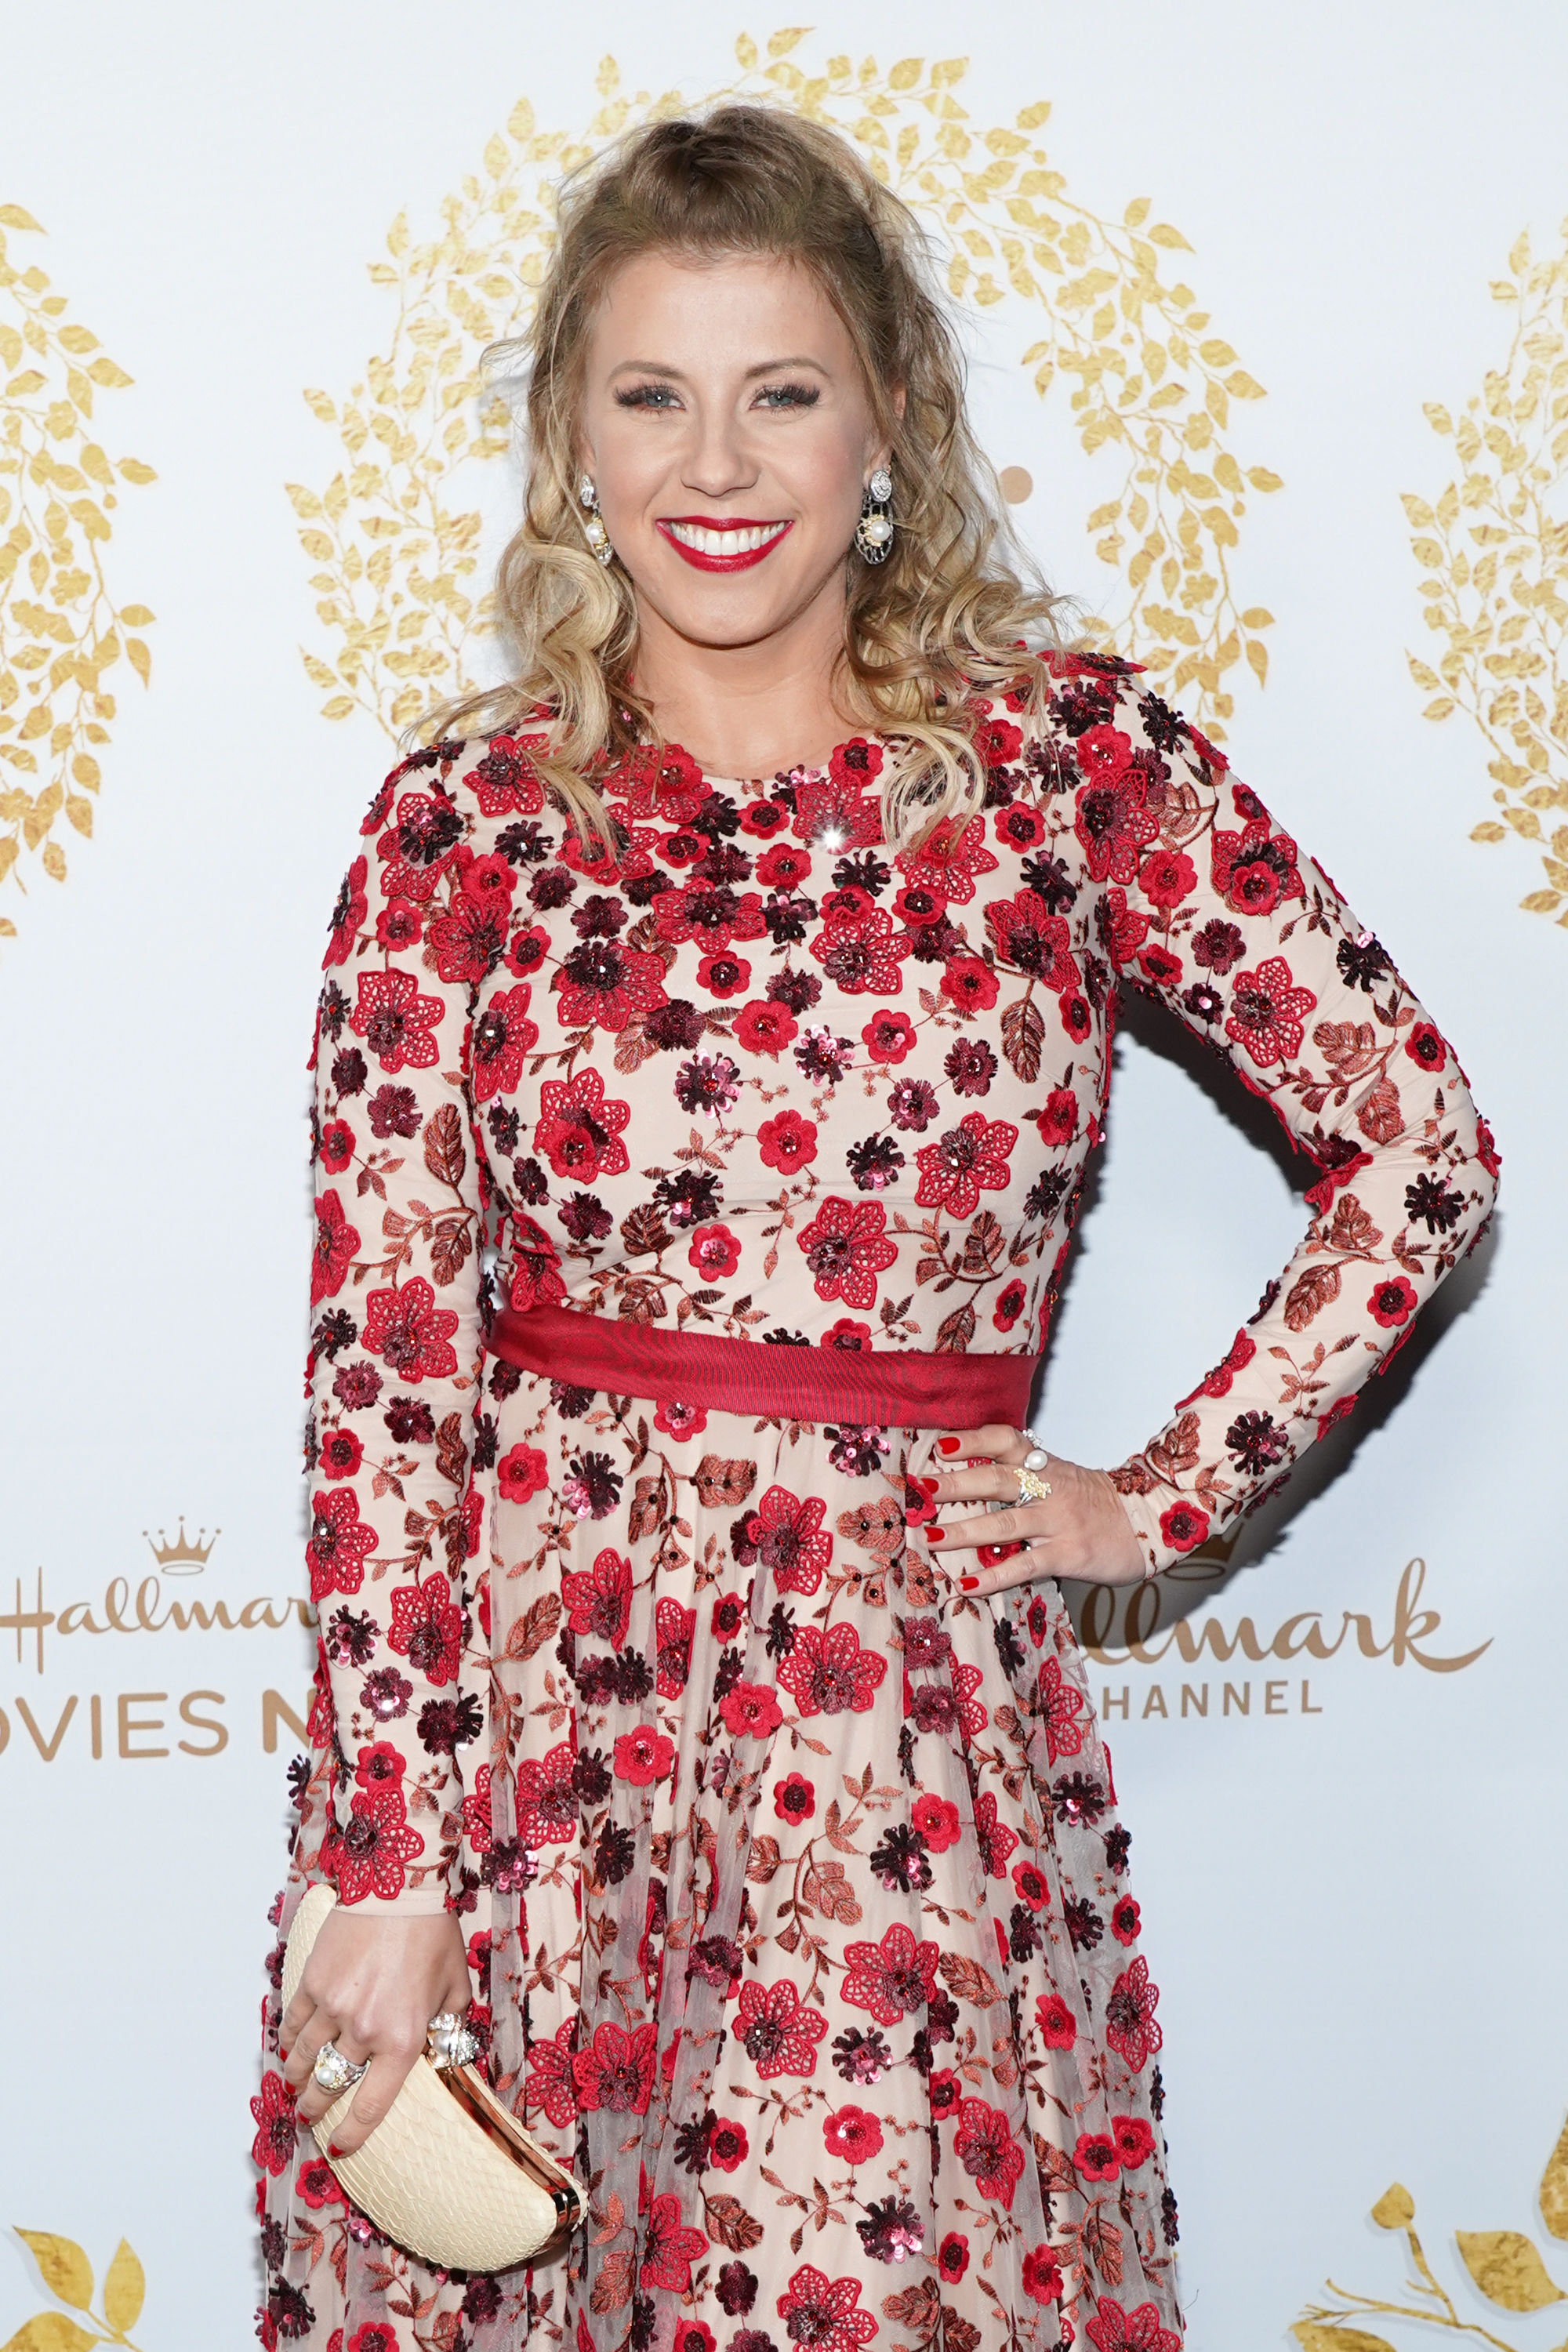 Jodie Sweetin Is Starring in a New Hallmark Christmas Movie